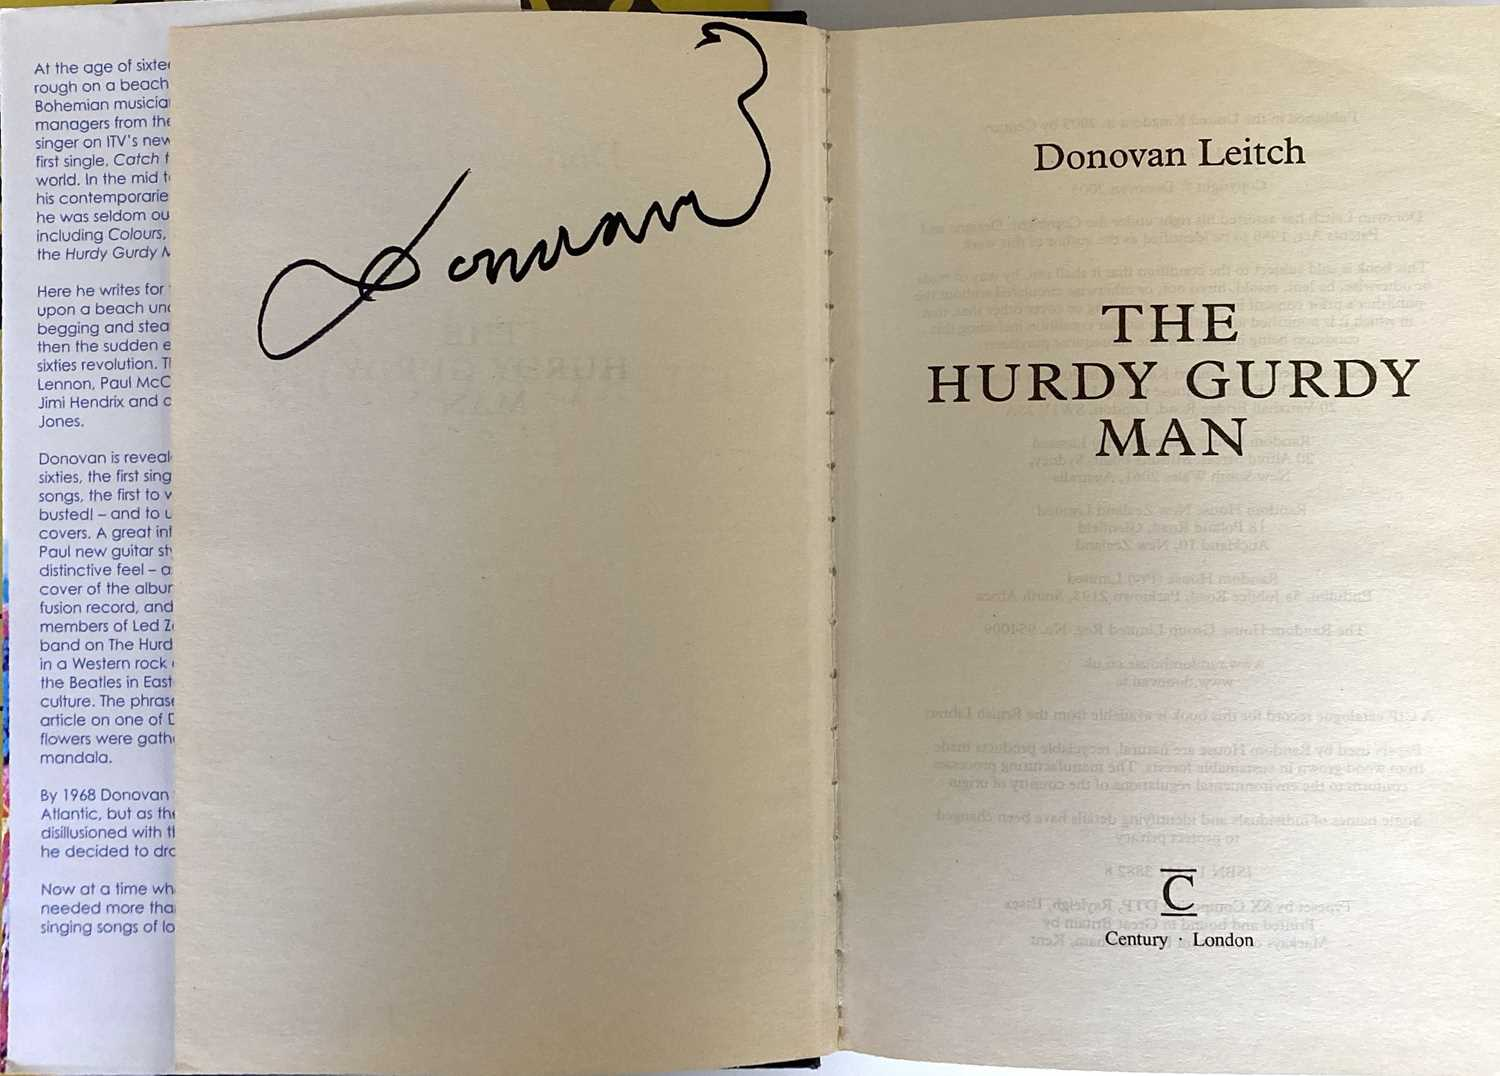 DONOVAN SIGNED ITEMS. - Image 4 of 5